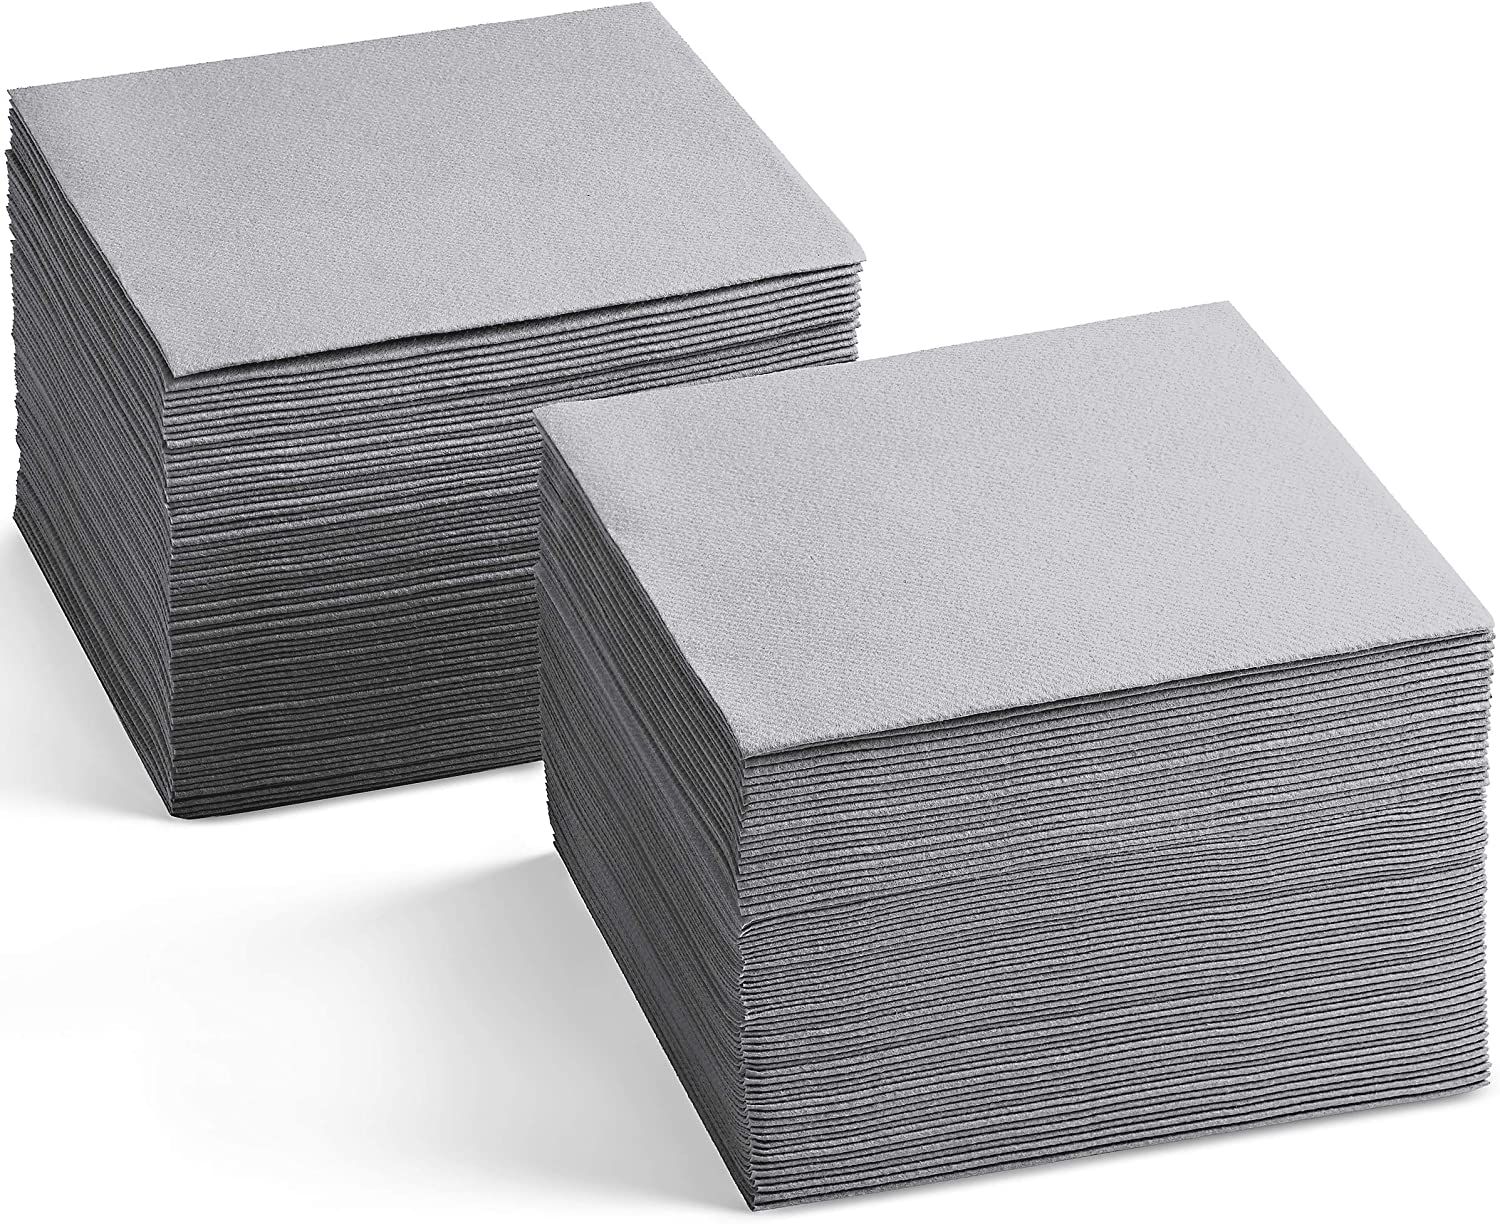 Linen-Feel Colored Cocktail Napkins - Decorative Cloth-Like GRAY Dessert And Beverage Napkins - Soft And Absorbent. For Restaurant, Bar, Café, Or Event. (Pack of 200)